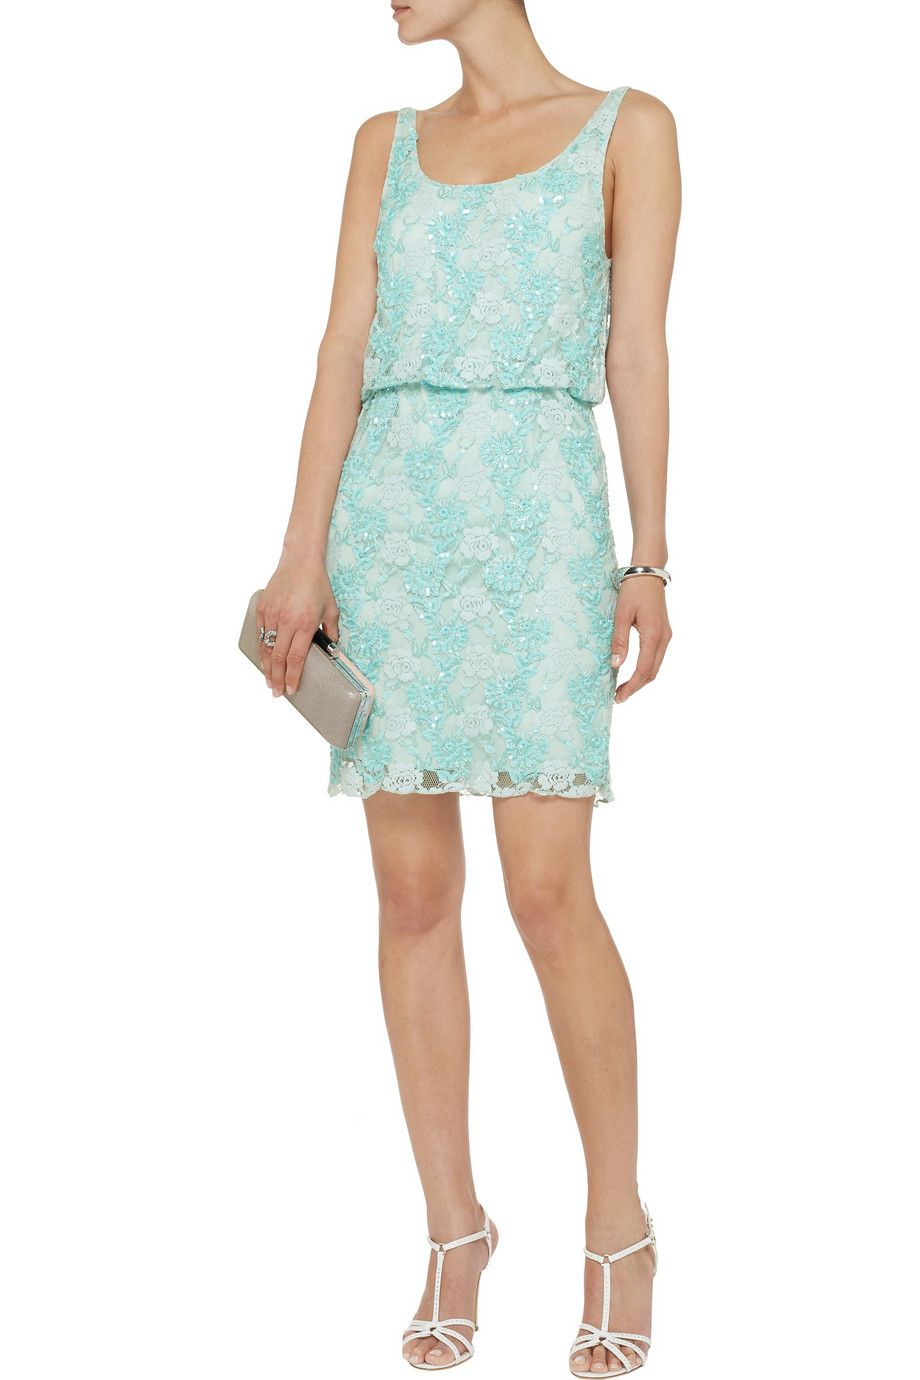 Alice + OliviaGabby embellished lace dressfront